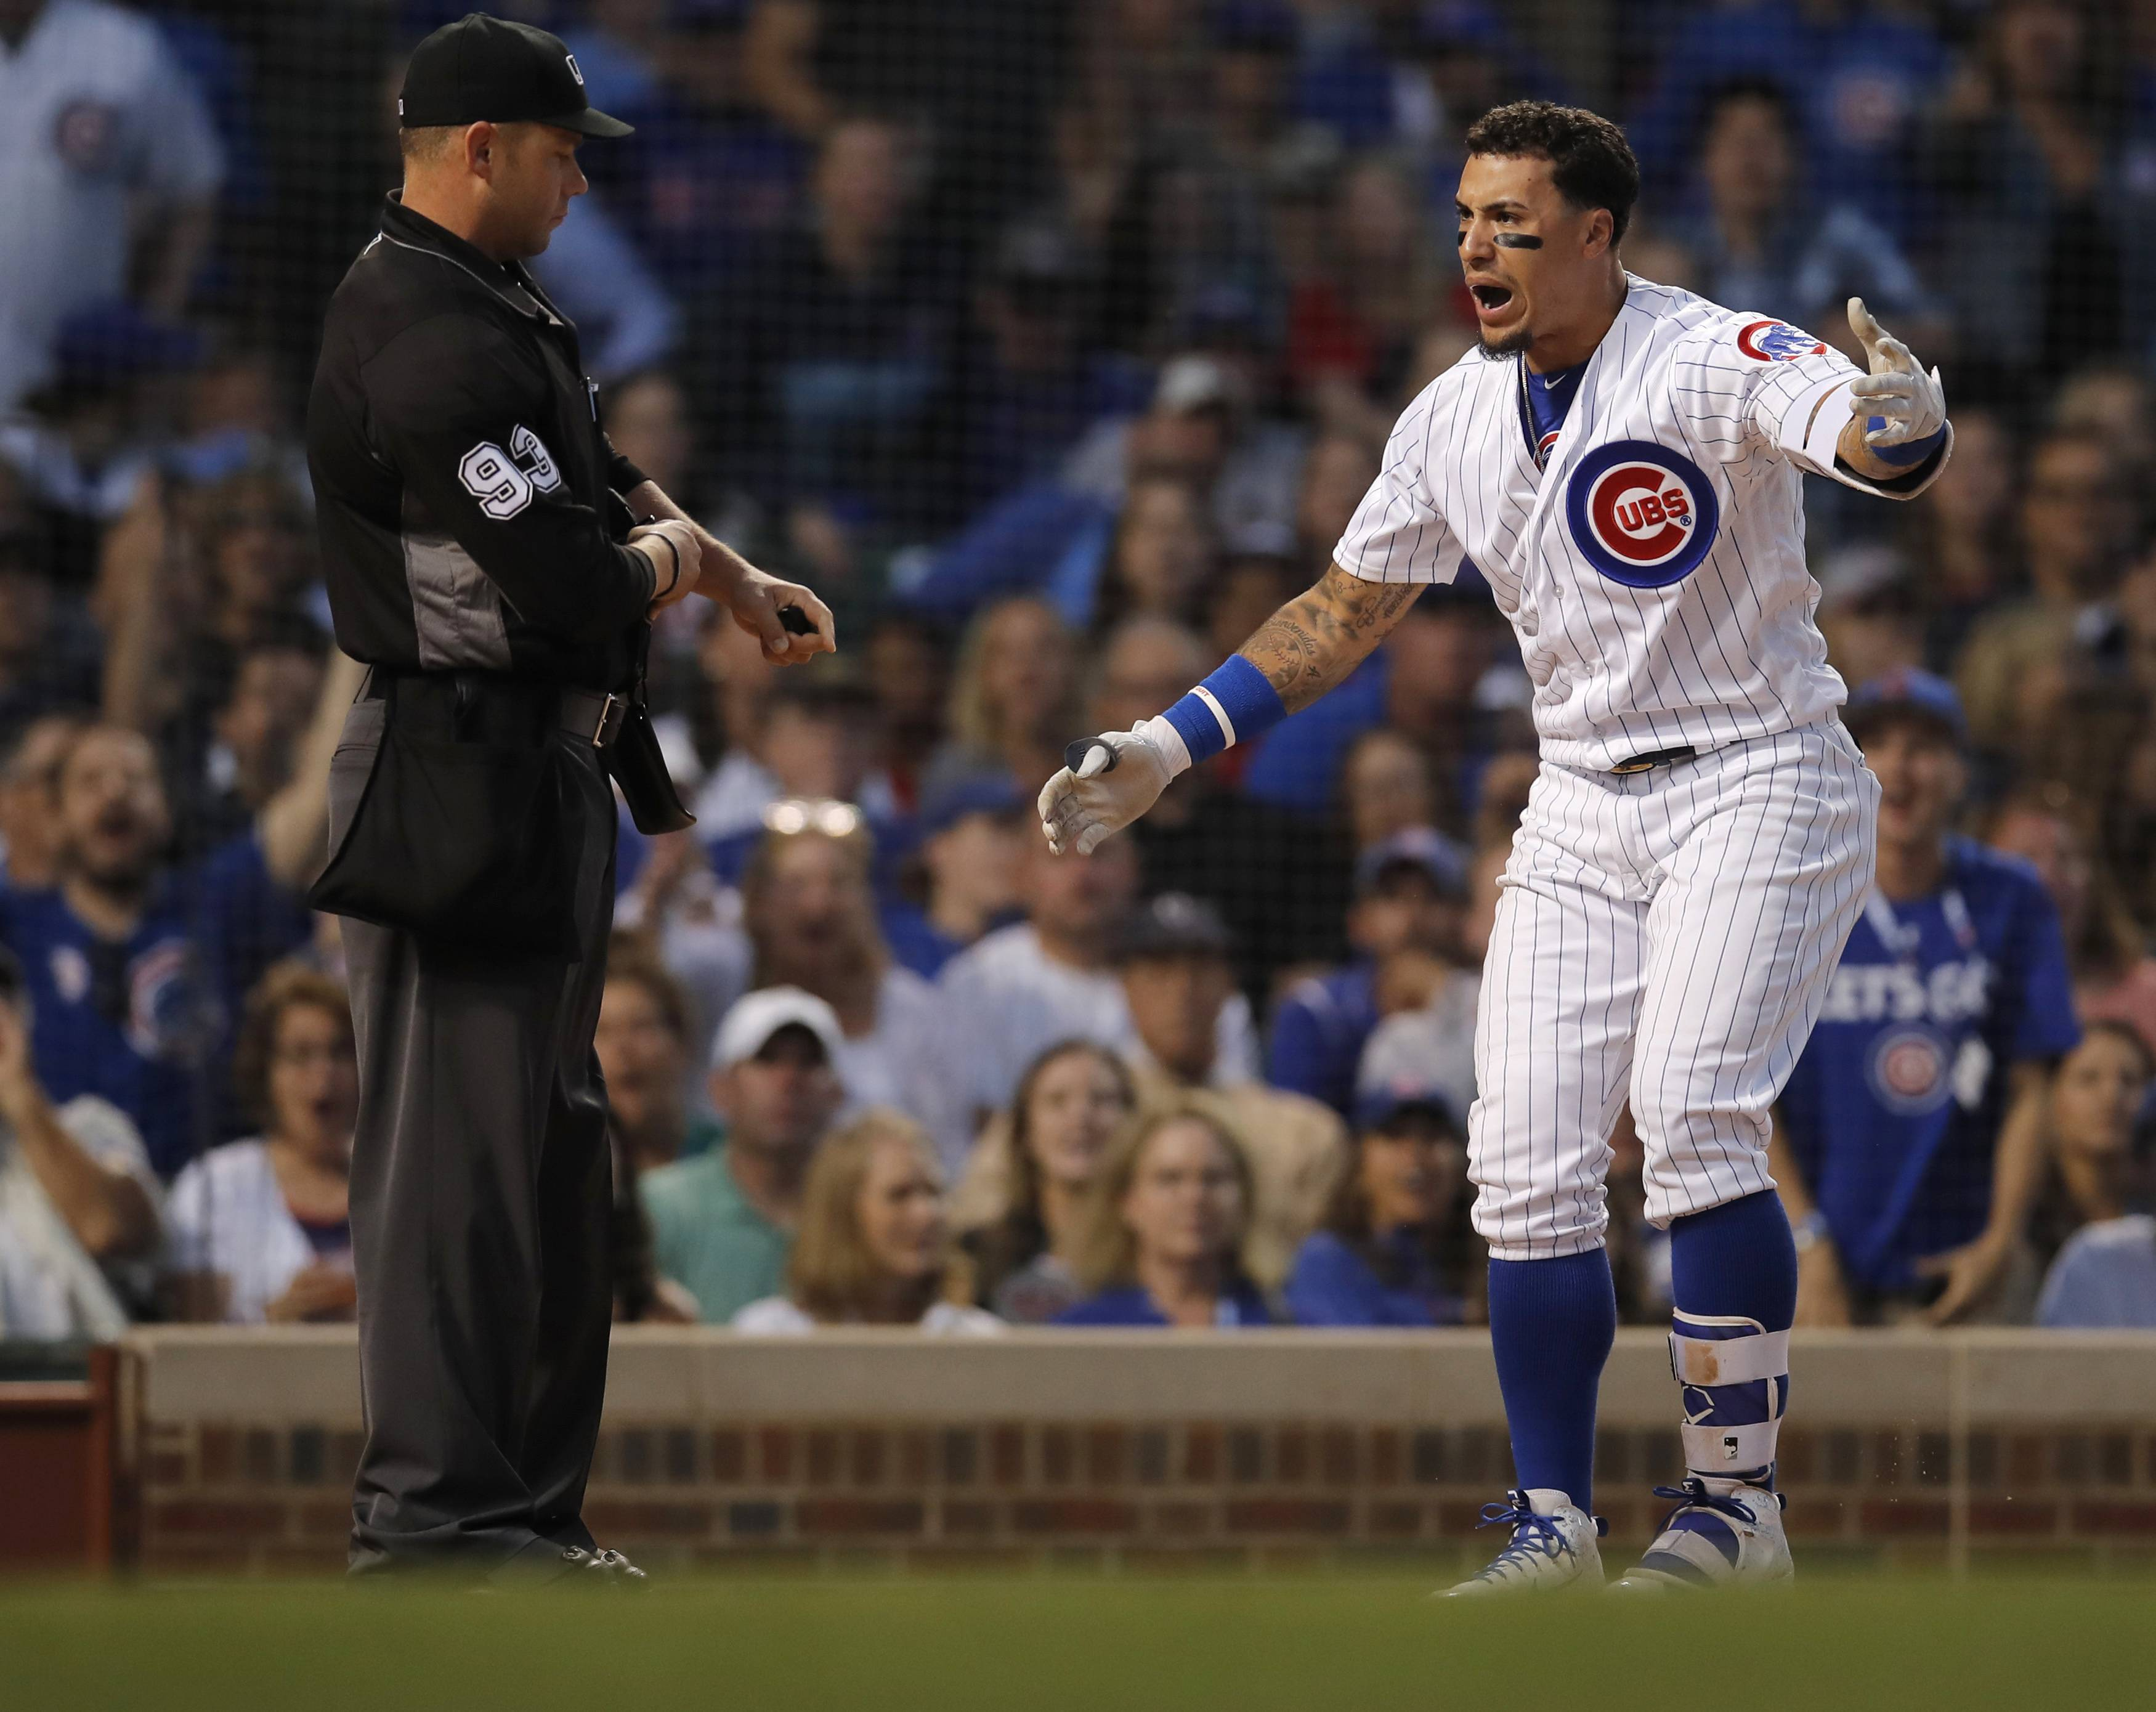 Chicago Cubs' Javier Baez, right, argues a called third strike by home plate umpire Will Little during the fifth inning of the second game of the team's doubleheader against the St. Louis Cardinals Saturday in Chicago.